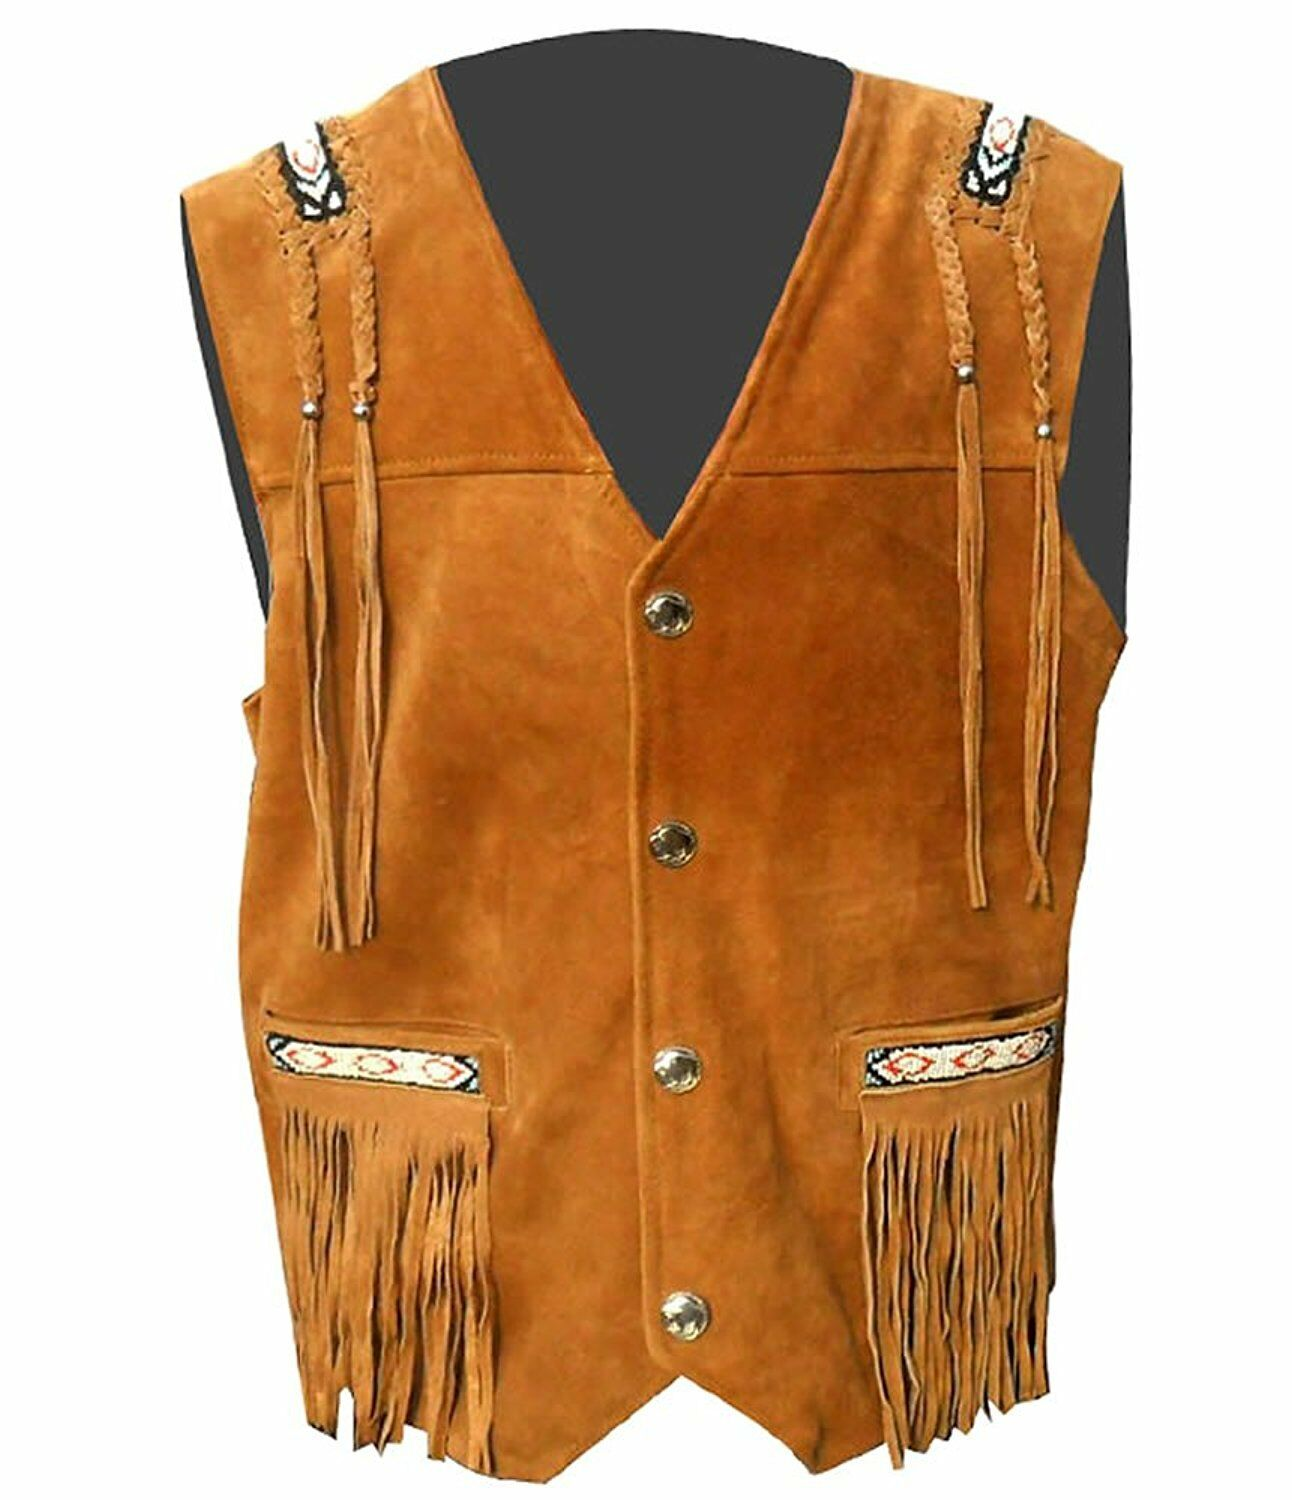 Vipzi Men's Western wear cowhide Suede Leather vest with Fringe and bone beads